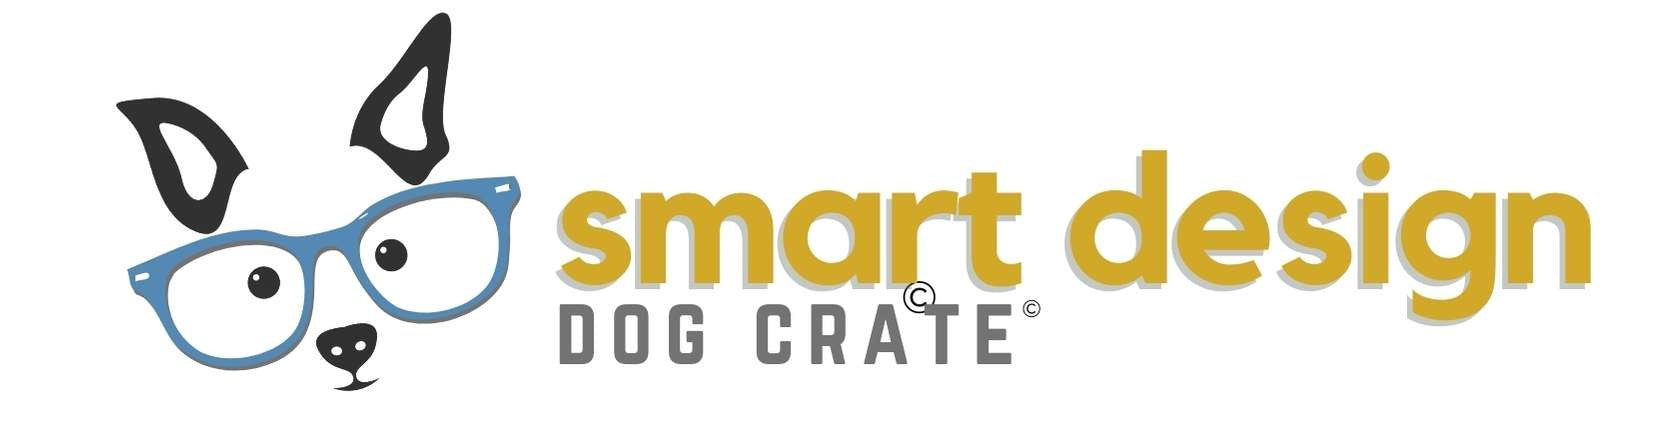 What is a Smart Design Dog Crate